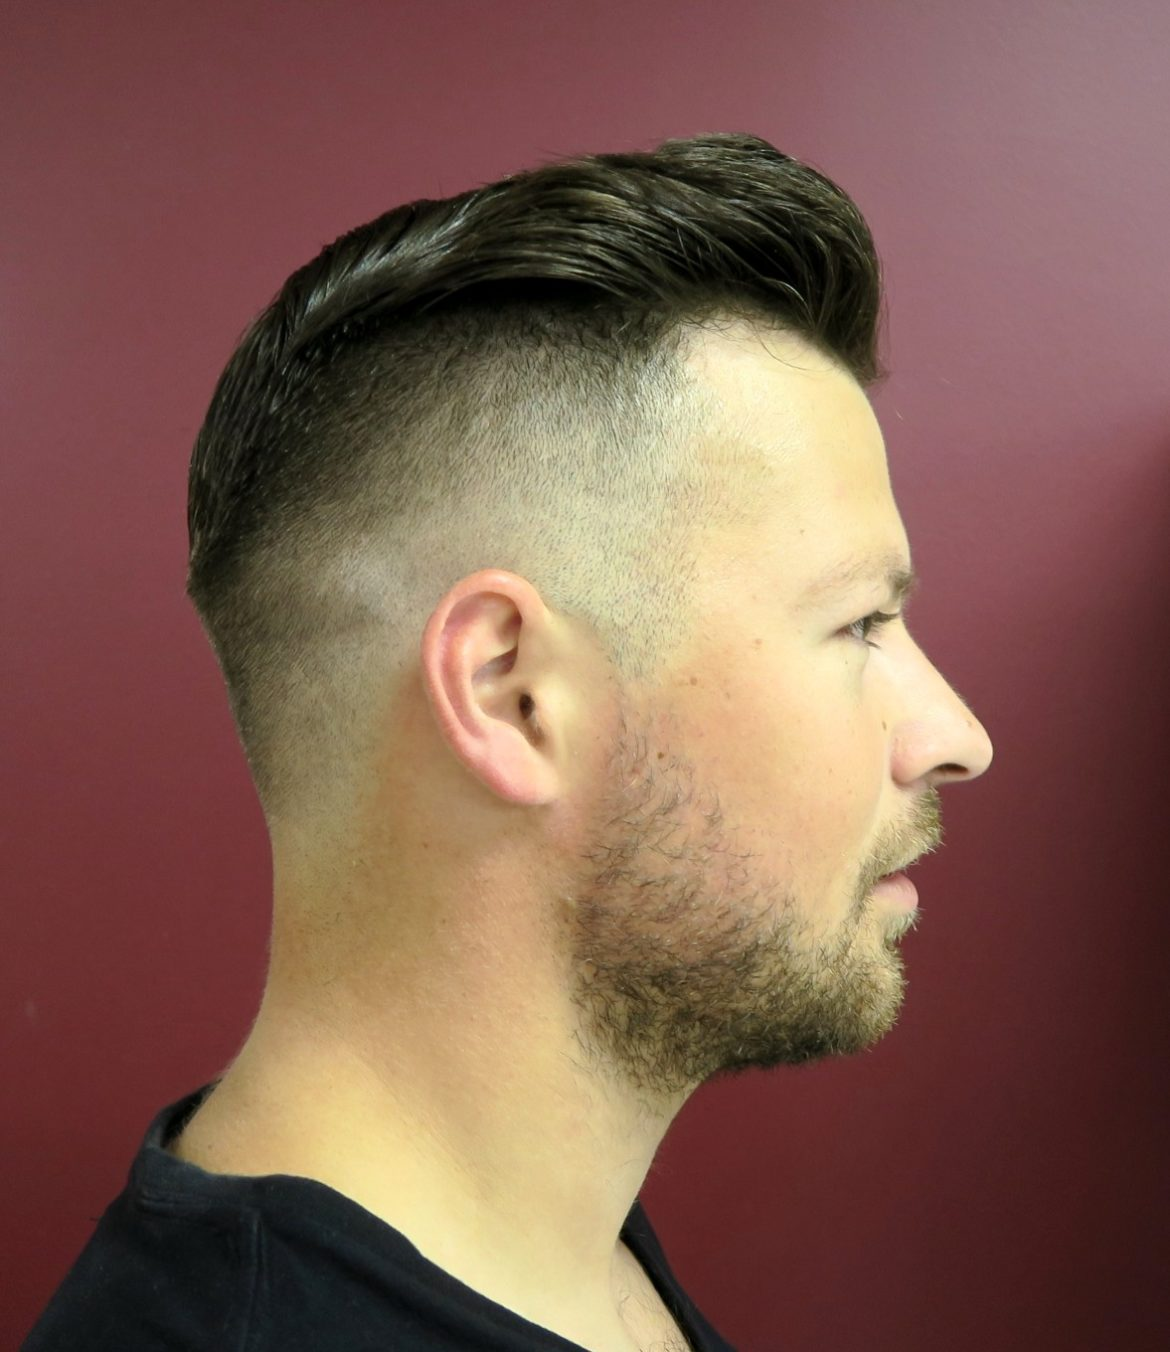 trendy haircuts for men trendy cuts gerard s 1170 | Annelise 02 1170x1352